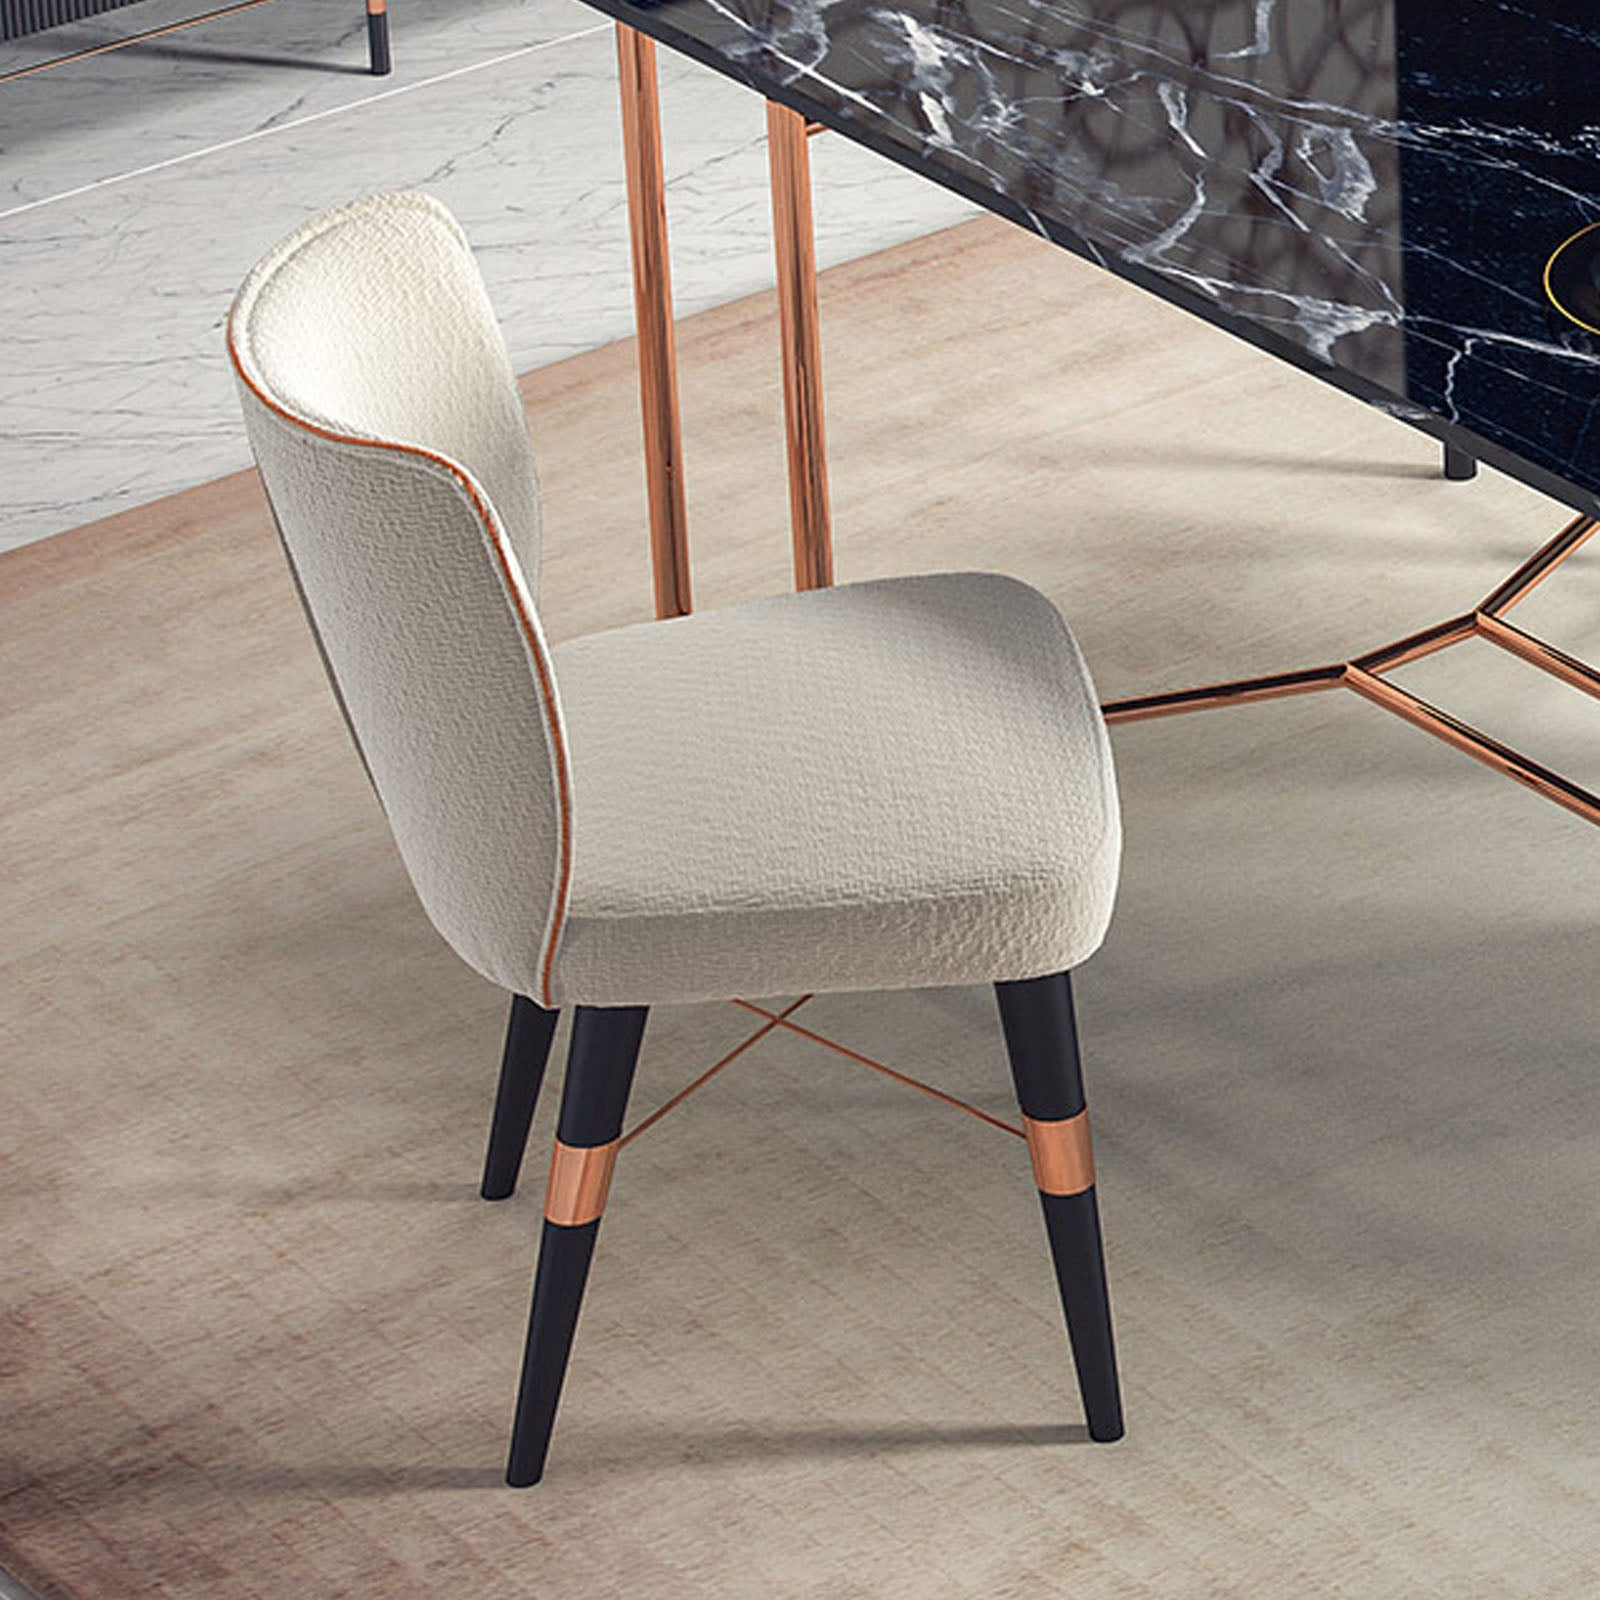 Pre-Order 40 days delivery Dali Chair Beige  Dali-W -  اطلب مسبقًا 60 يومًا توصيل كرسي بتصميم دالي بلون البيج - Shop Online Furniture and Home Decor Store in Dubai, UAE at ebarza